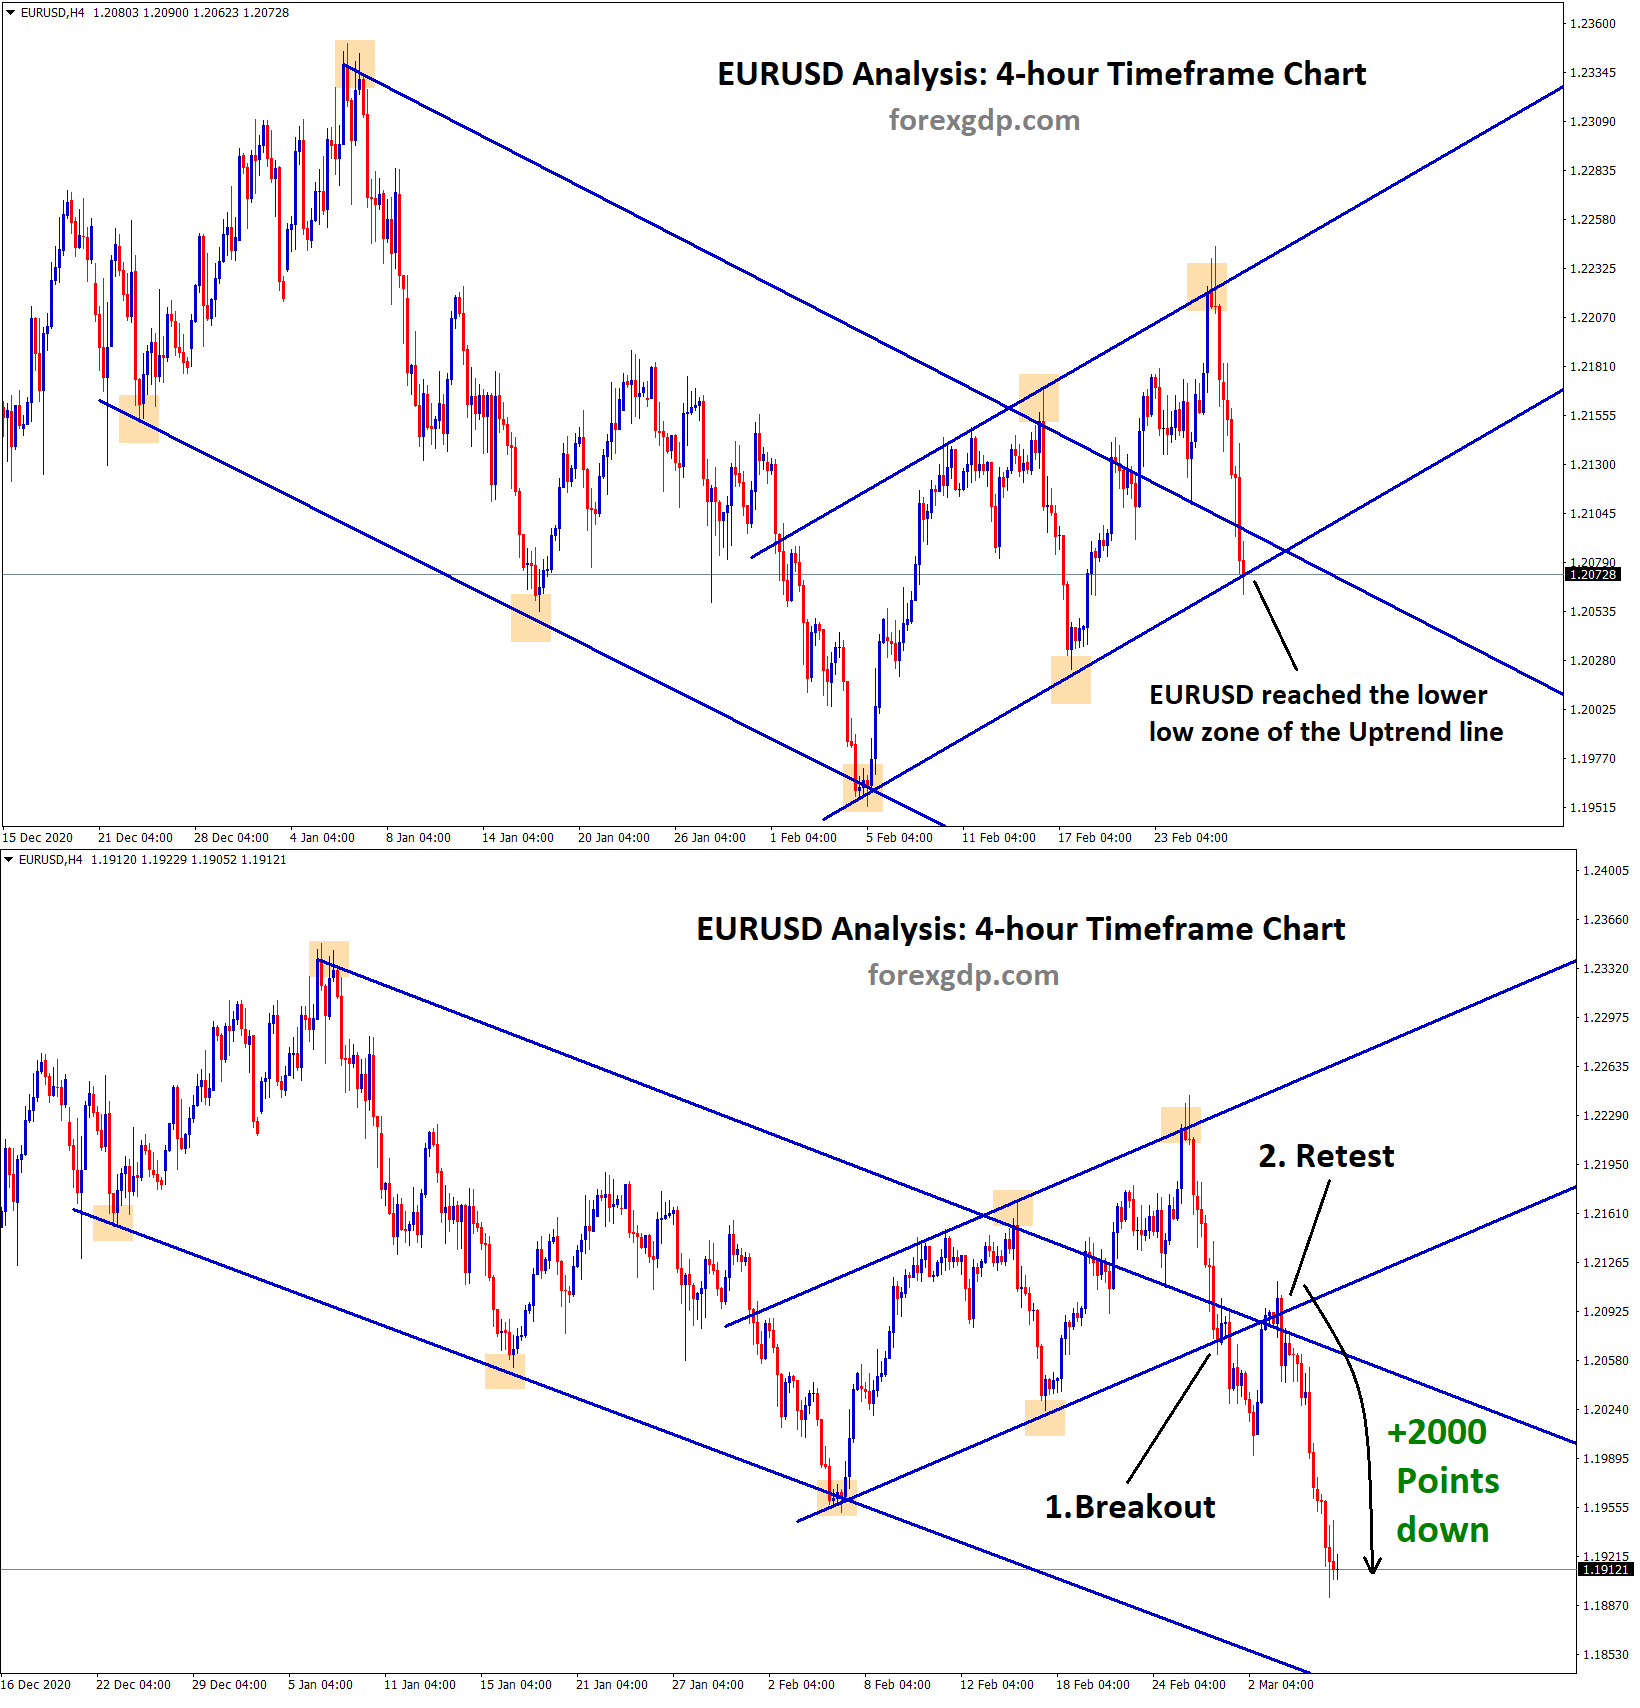 eurusd fall down 2000 poitns after retesting the broken level of the uptrend line